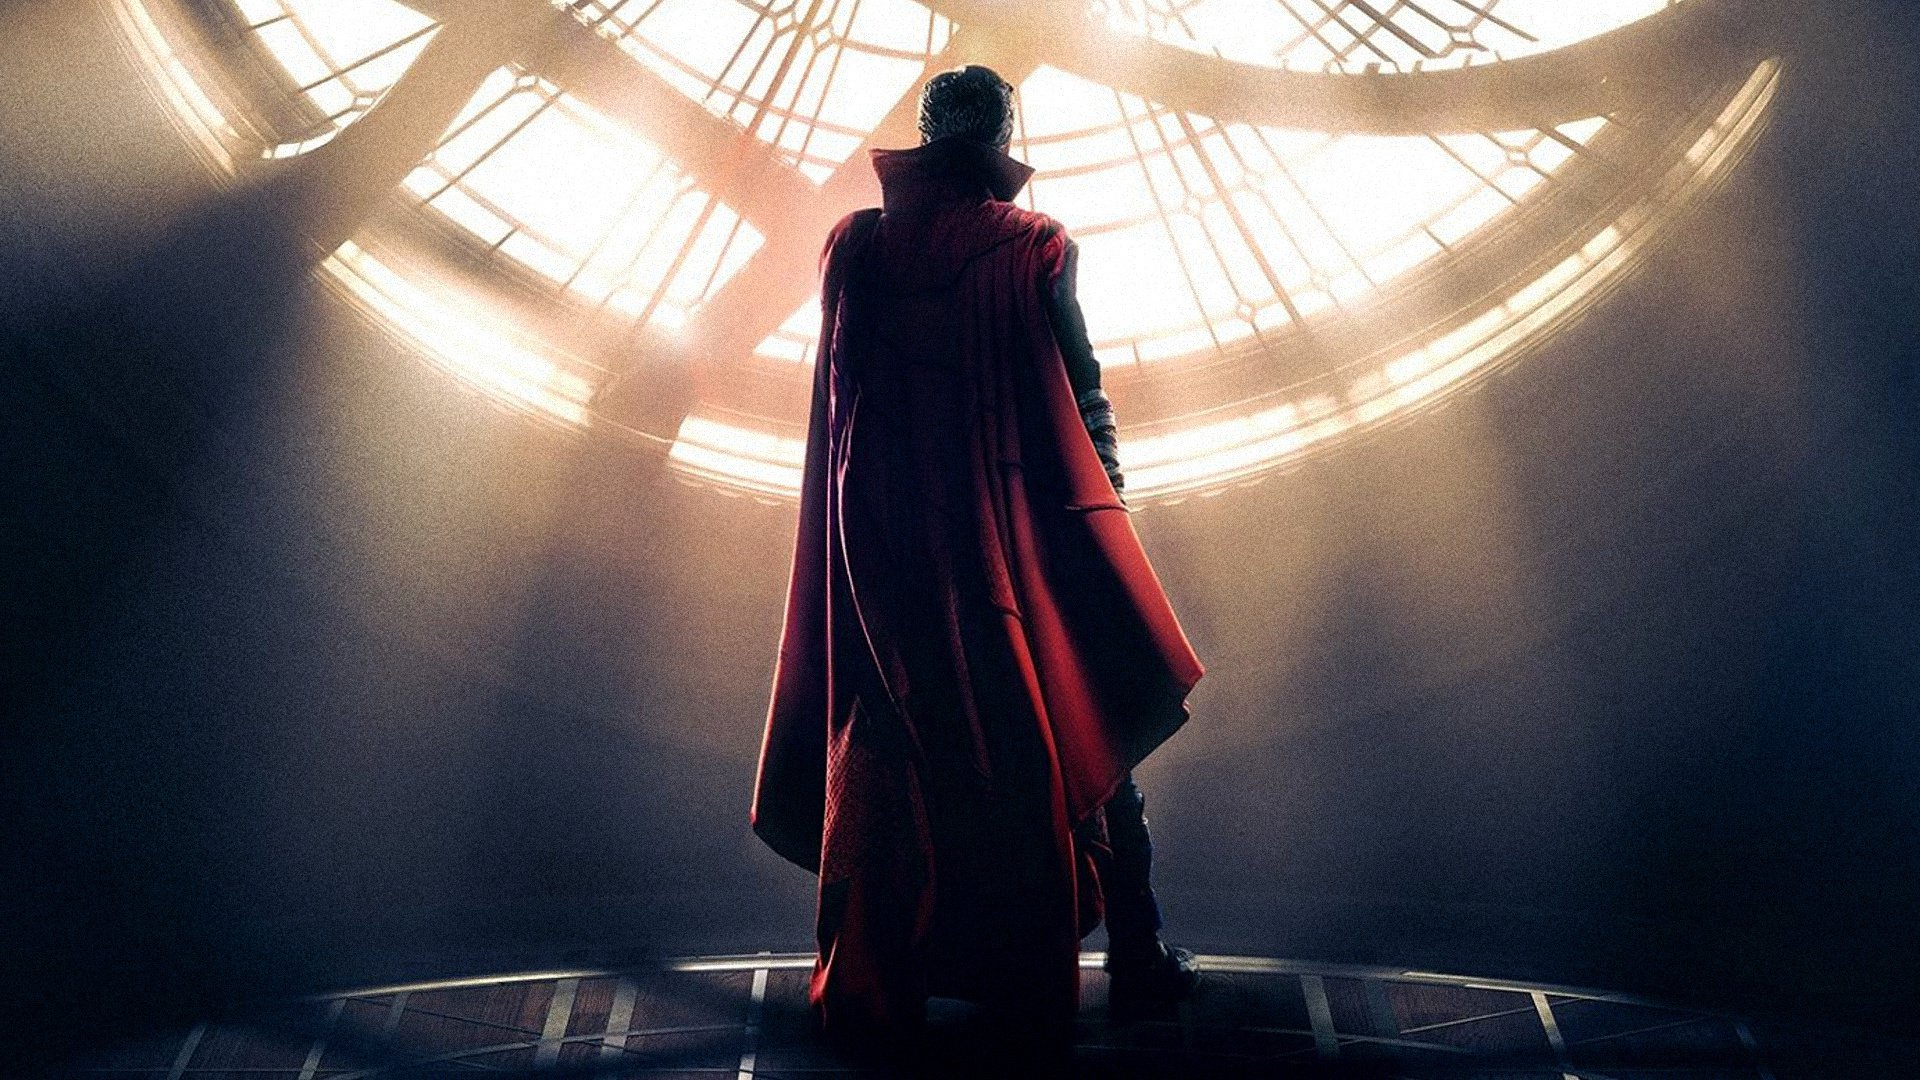 Doctor Strange Review: Marvel's New Superhero Movie Is A Mind-Bender | IndieWire